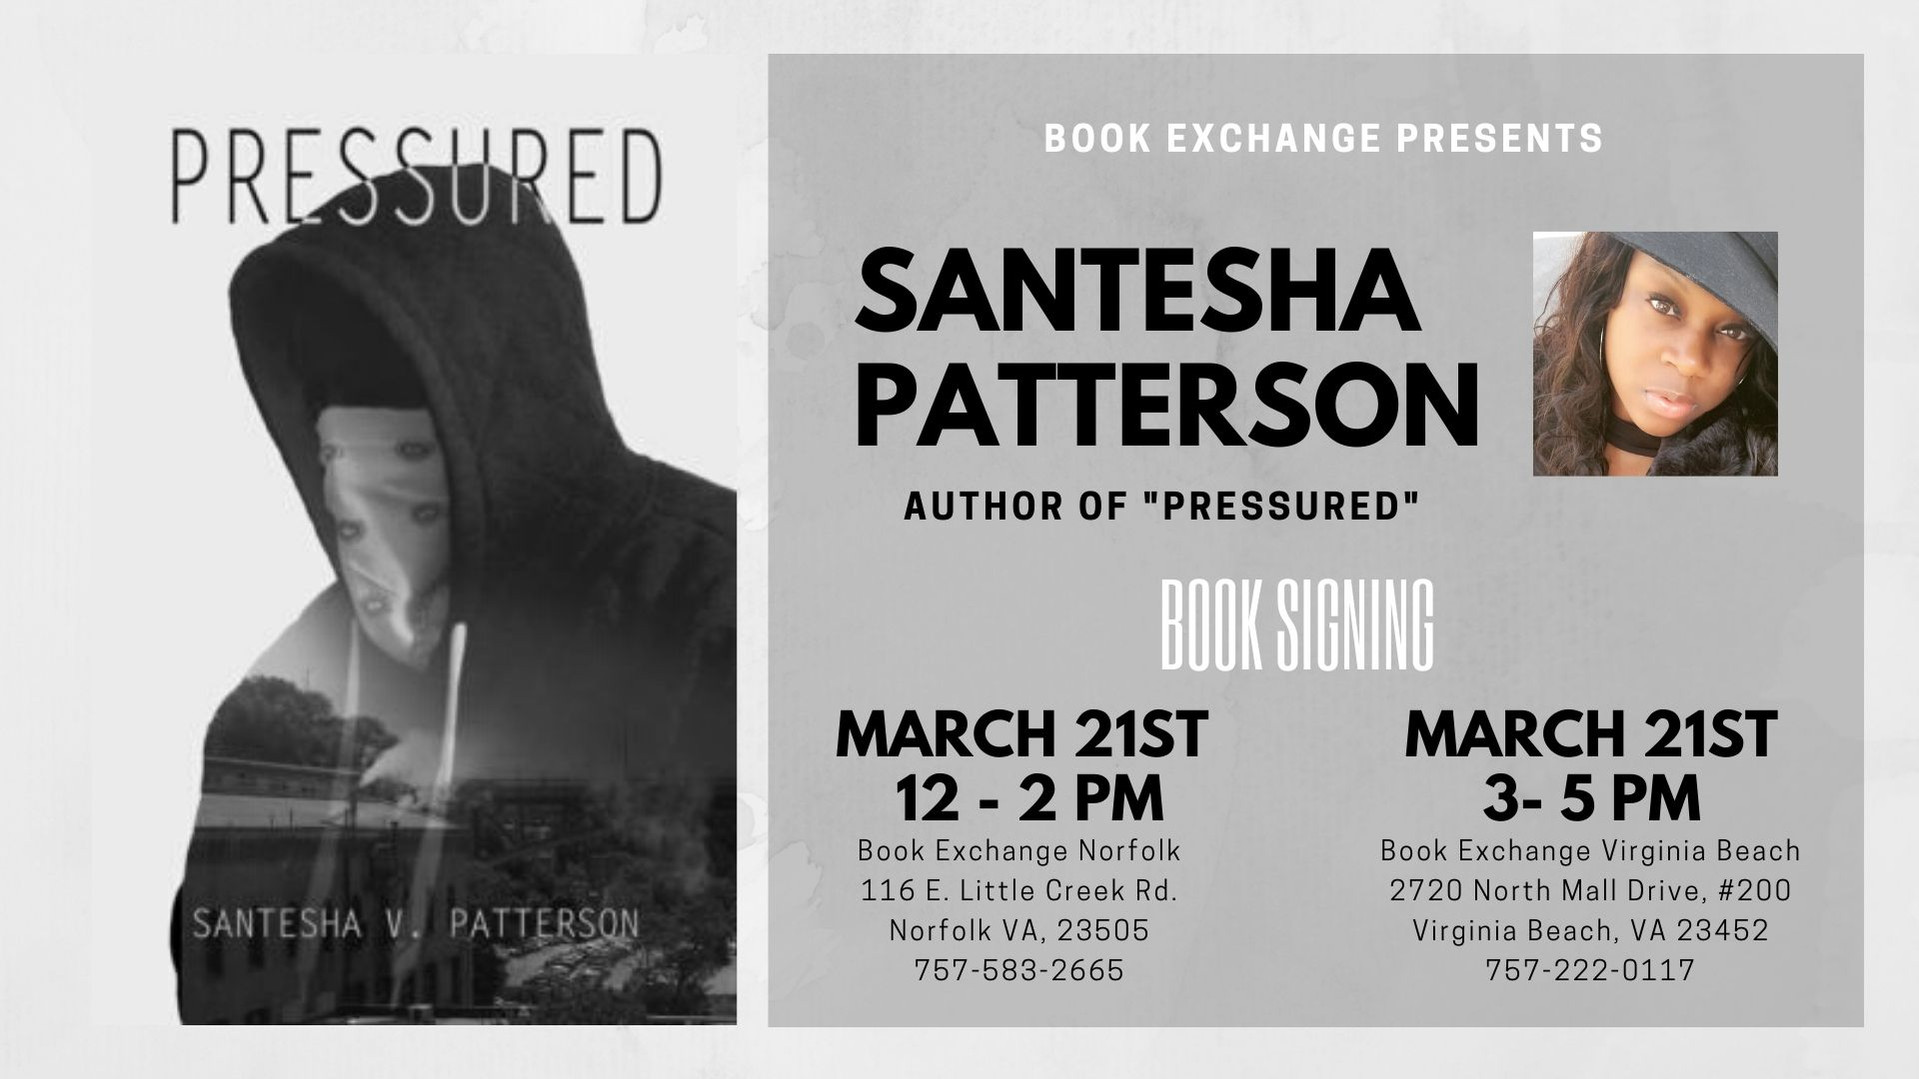 Santesha Patterson Book Signing